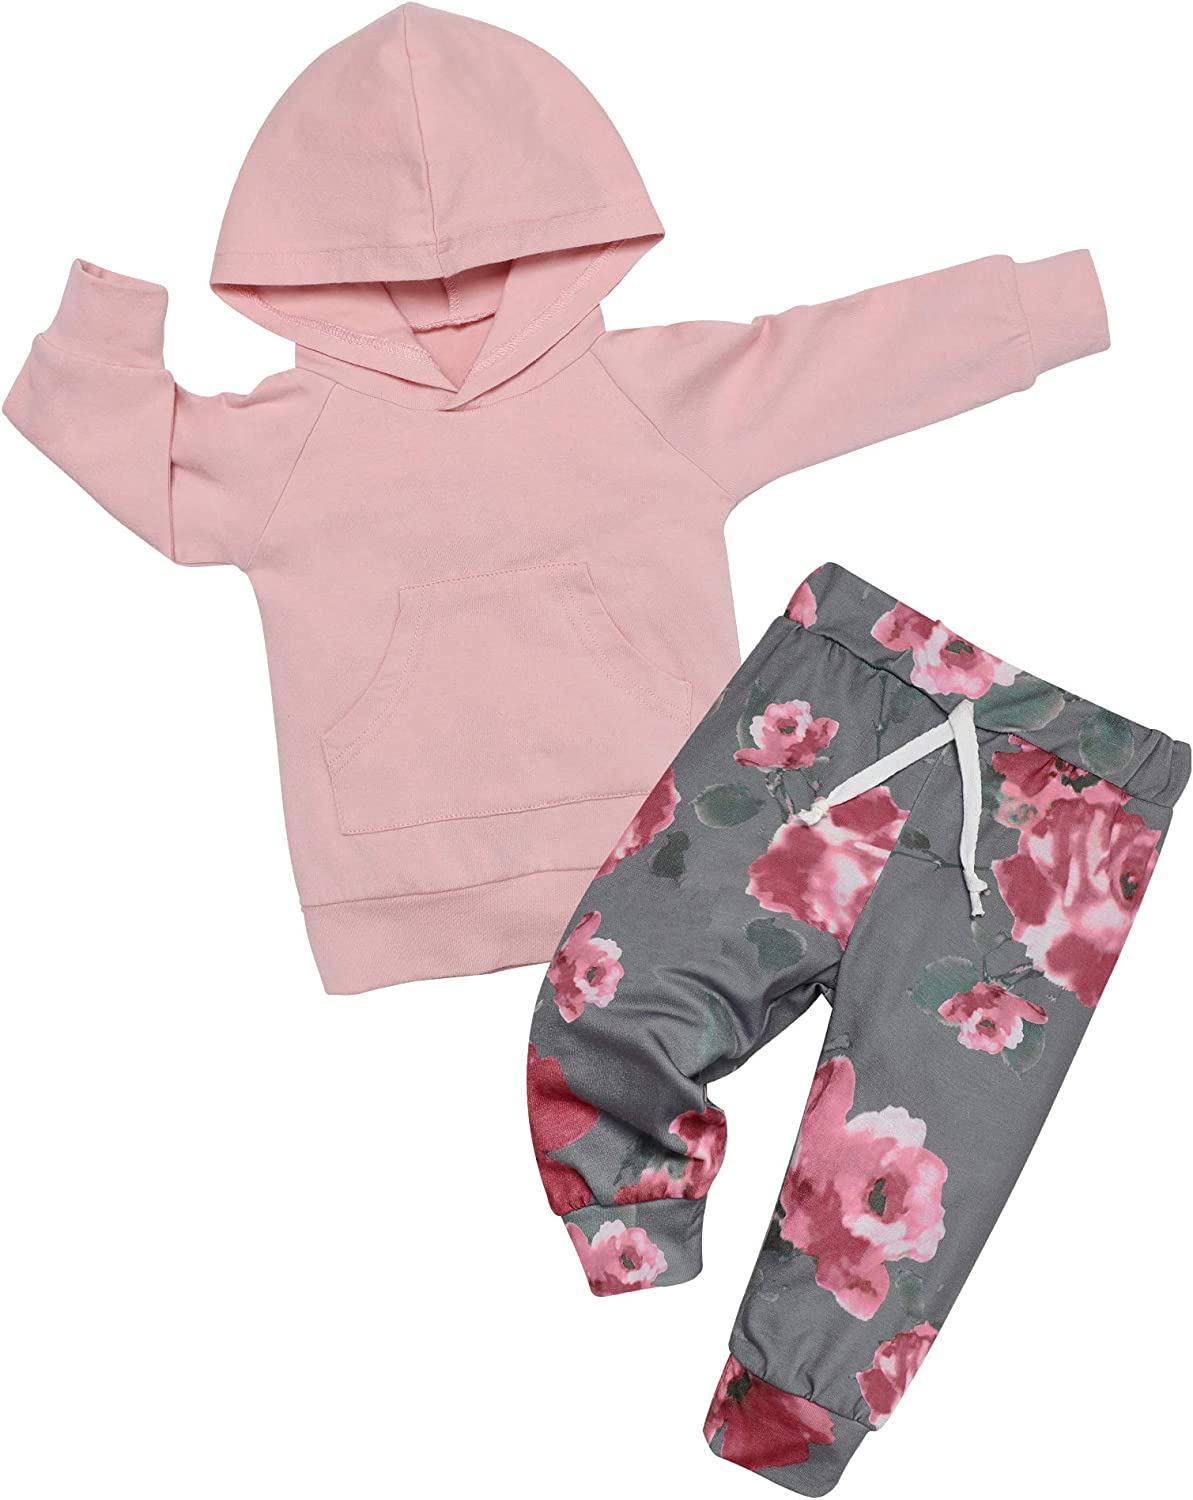 Newborn Baby Girl Clothes Outfits Infant Ruffle Romper Floral Pants Cute Toddler Baby Girl Clothes Set